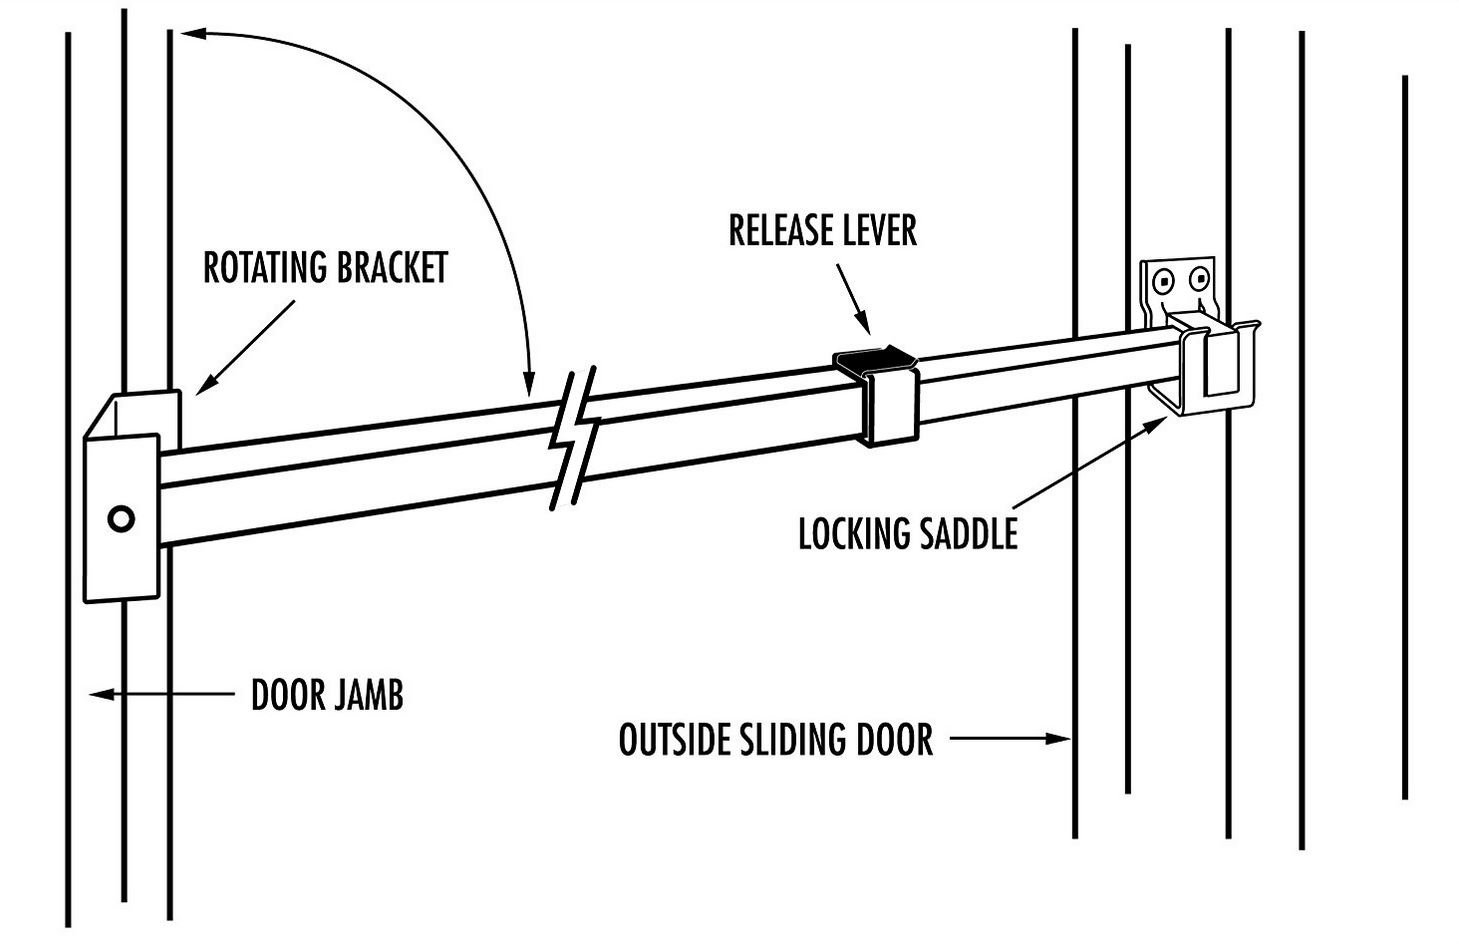 Ideal Security SK110 Patio Door Security Bar with Child-Proof Lock, Adjustable 25-48 inches for Ventilation, White by Ideal Security Inc. (Image #7)